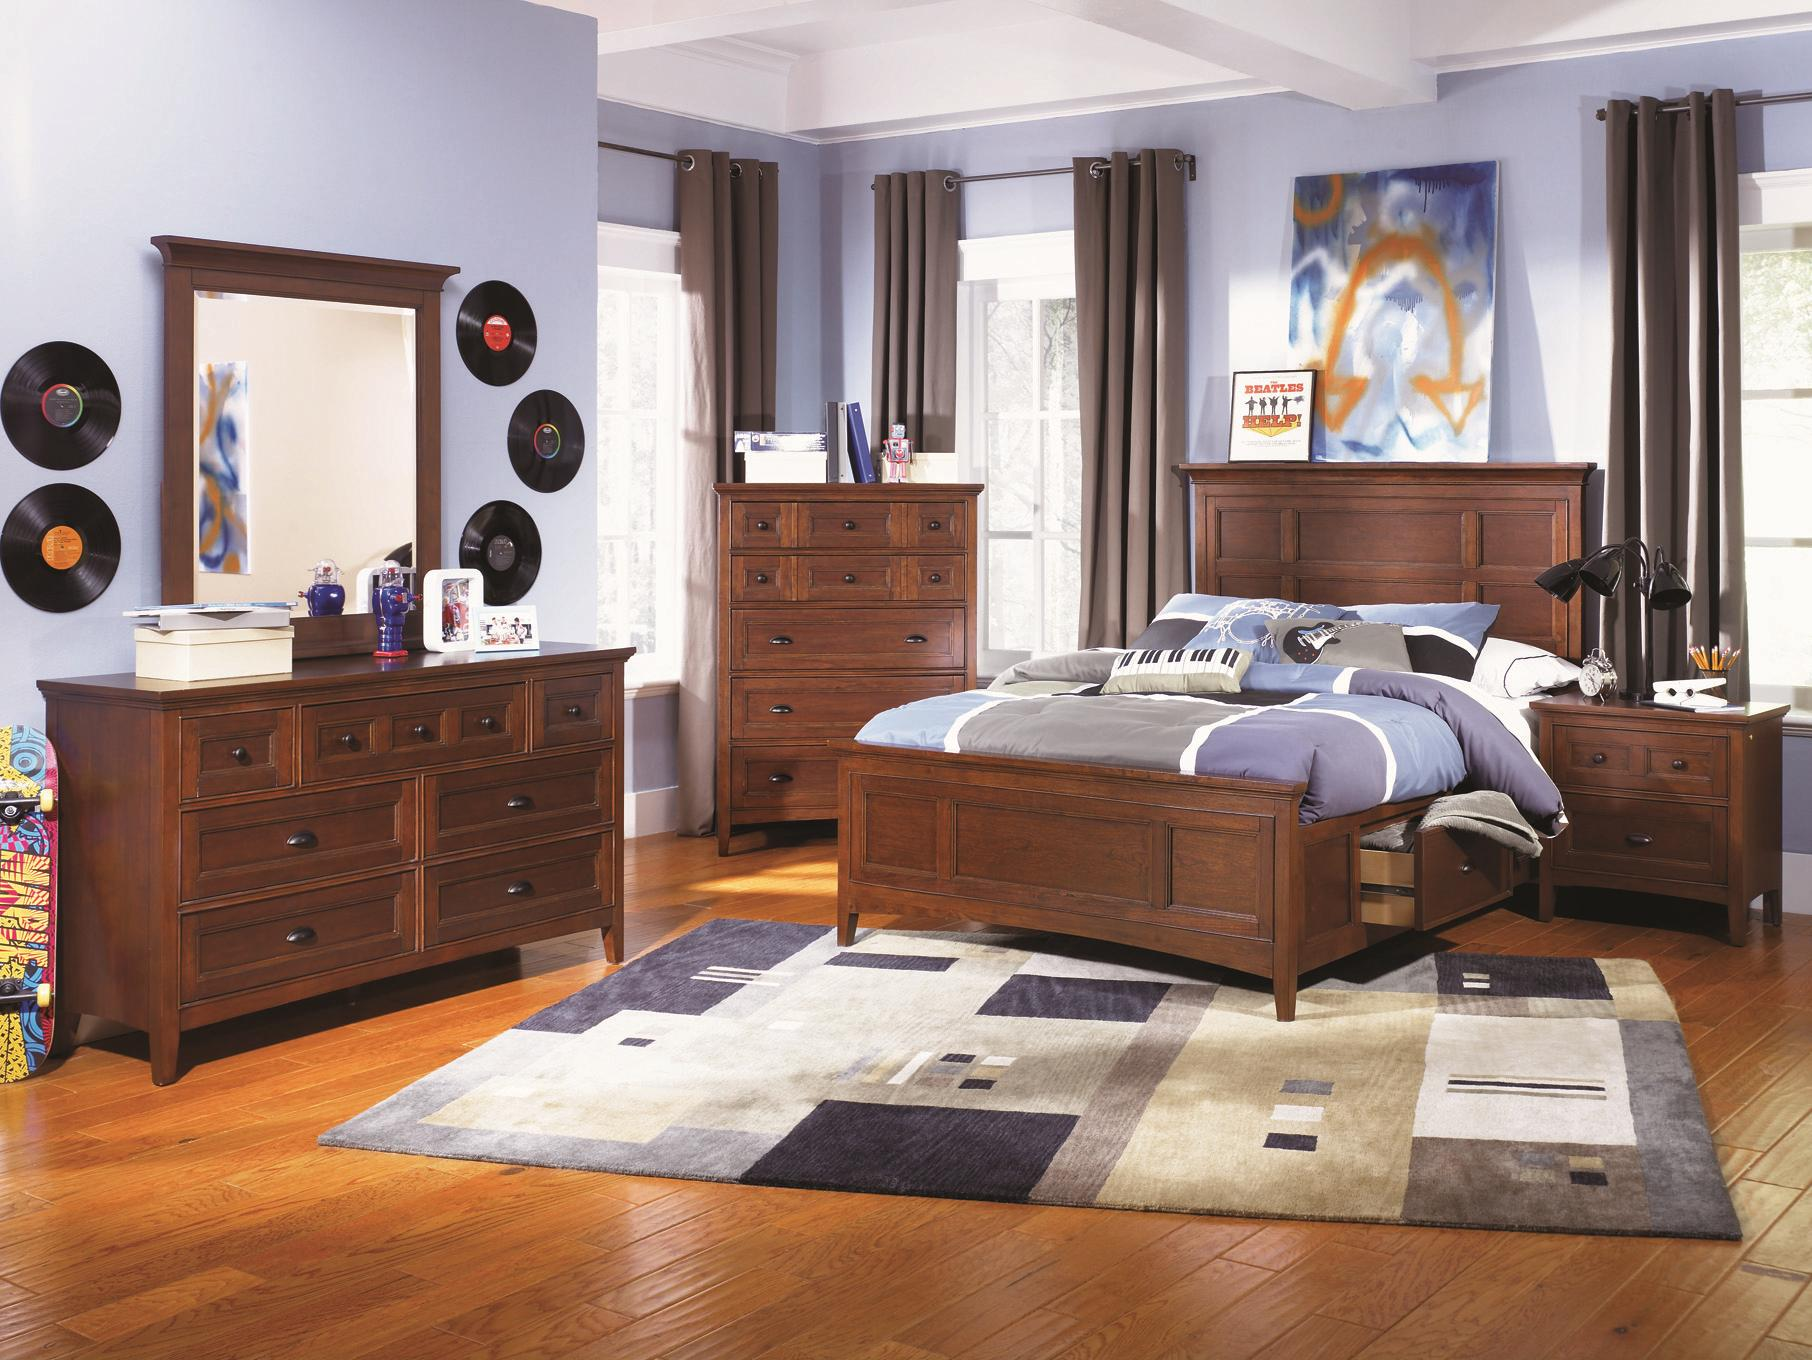 Magnussen Bedroom Furniture Next Generation By Magnussen Riley Twin Bed With Bookcase